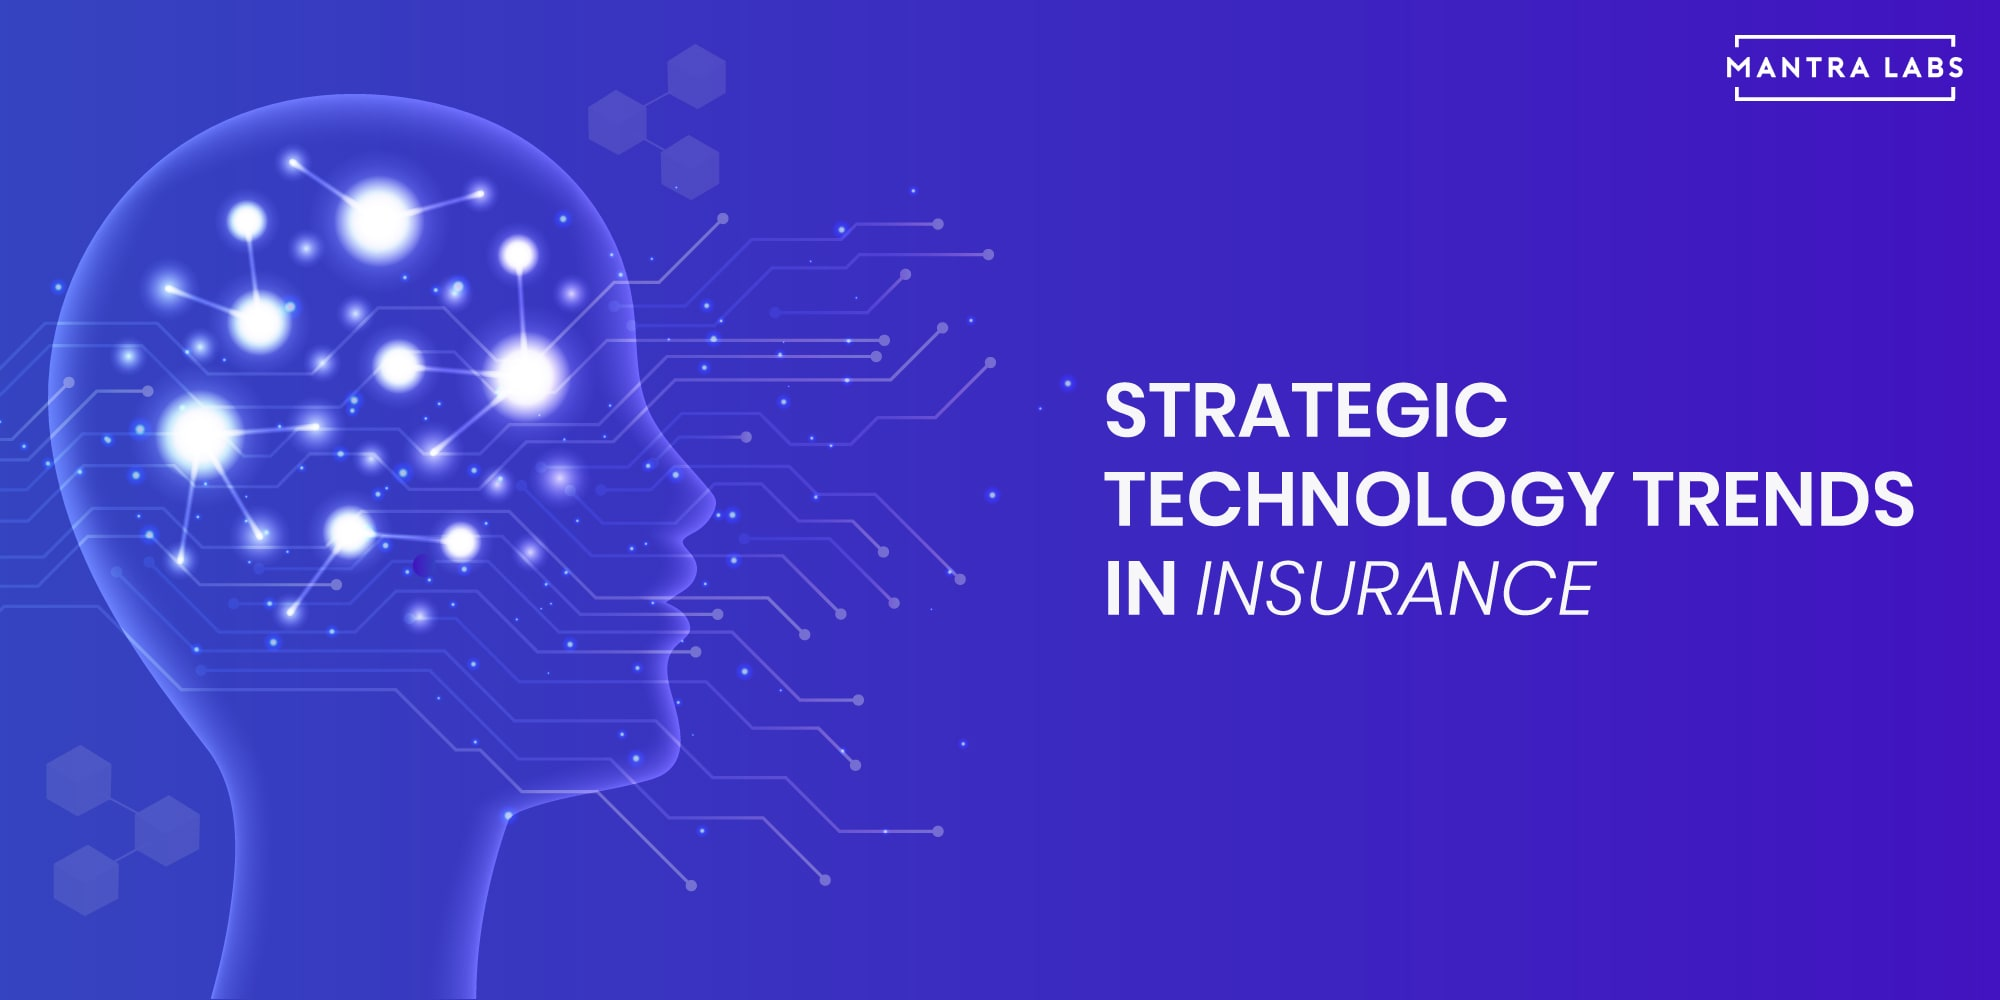 Strategic Technology Trends in Insurance - Mantra Labs